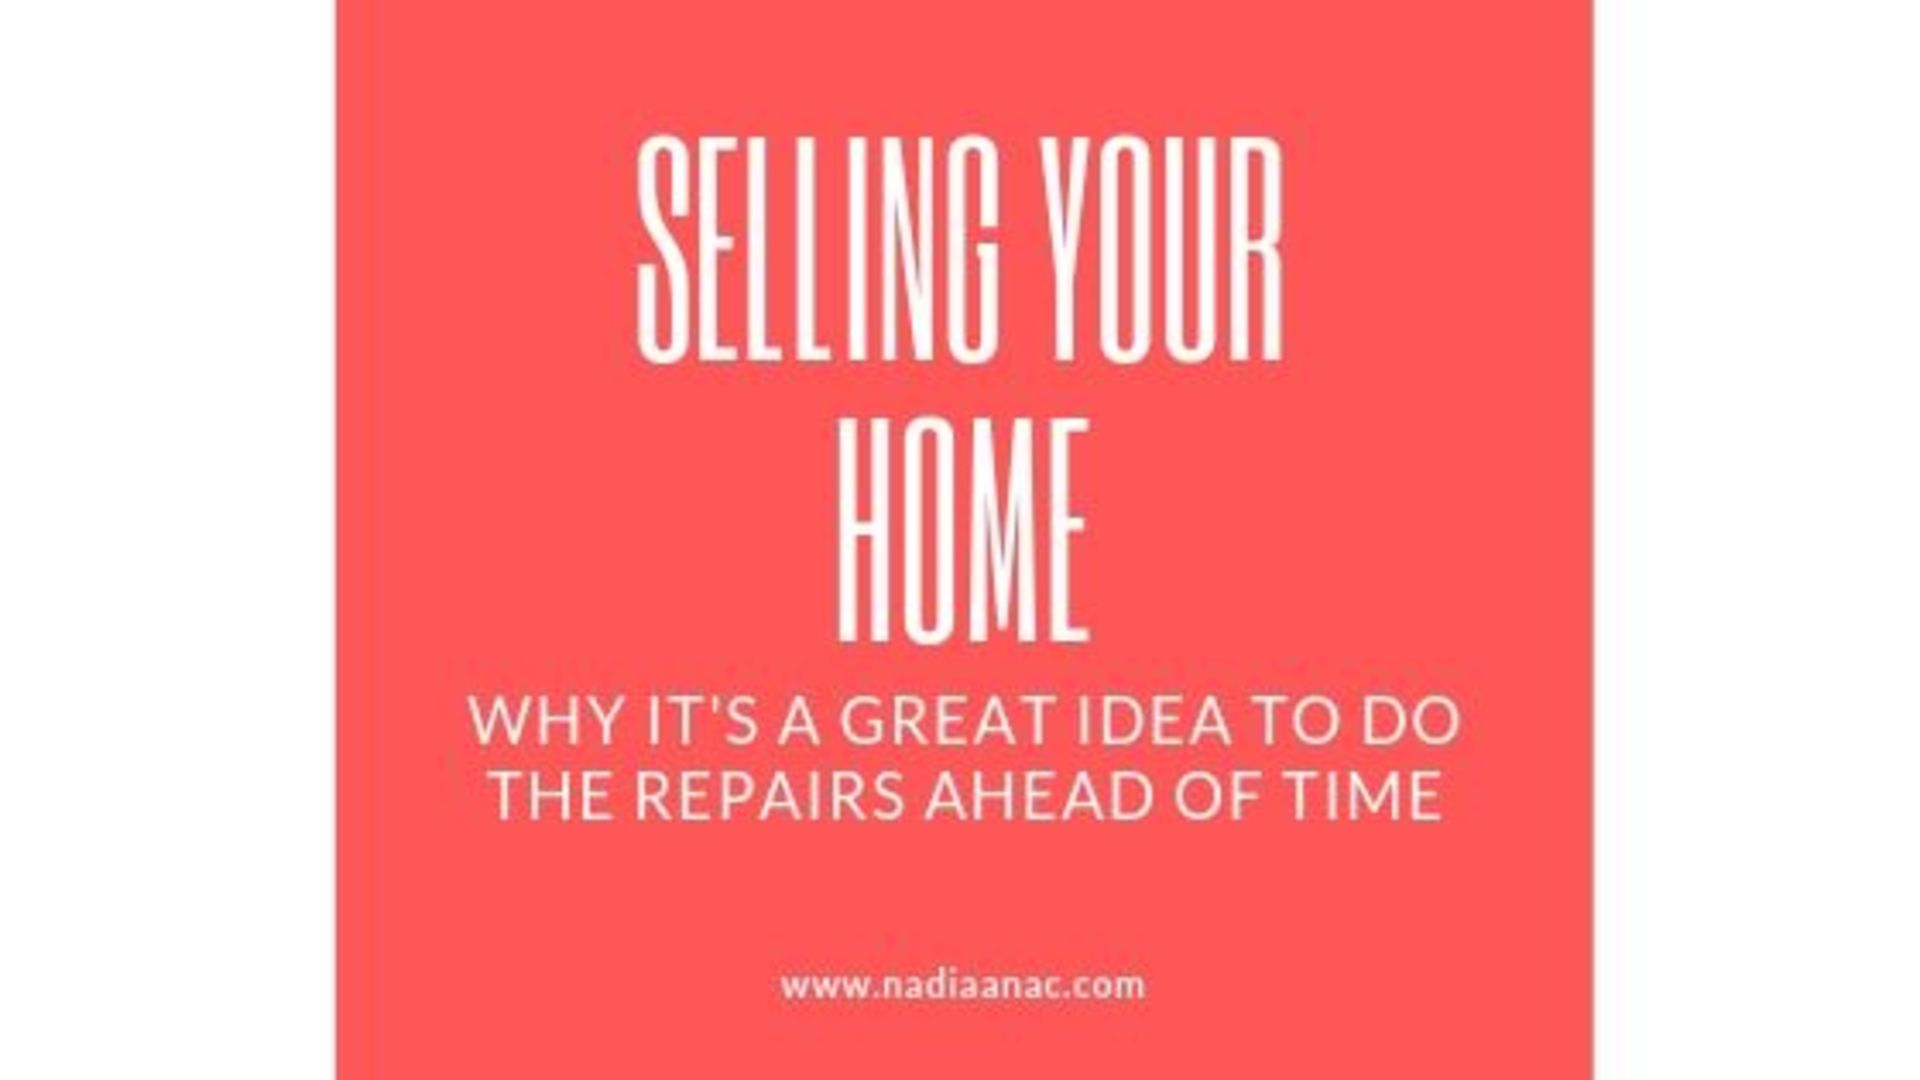 Sellers: Do the Repairs Ahead of Time!